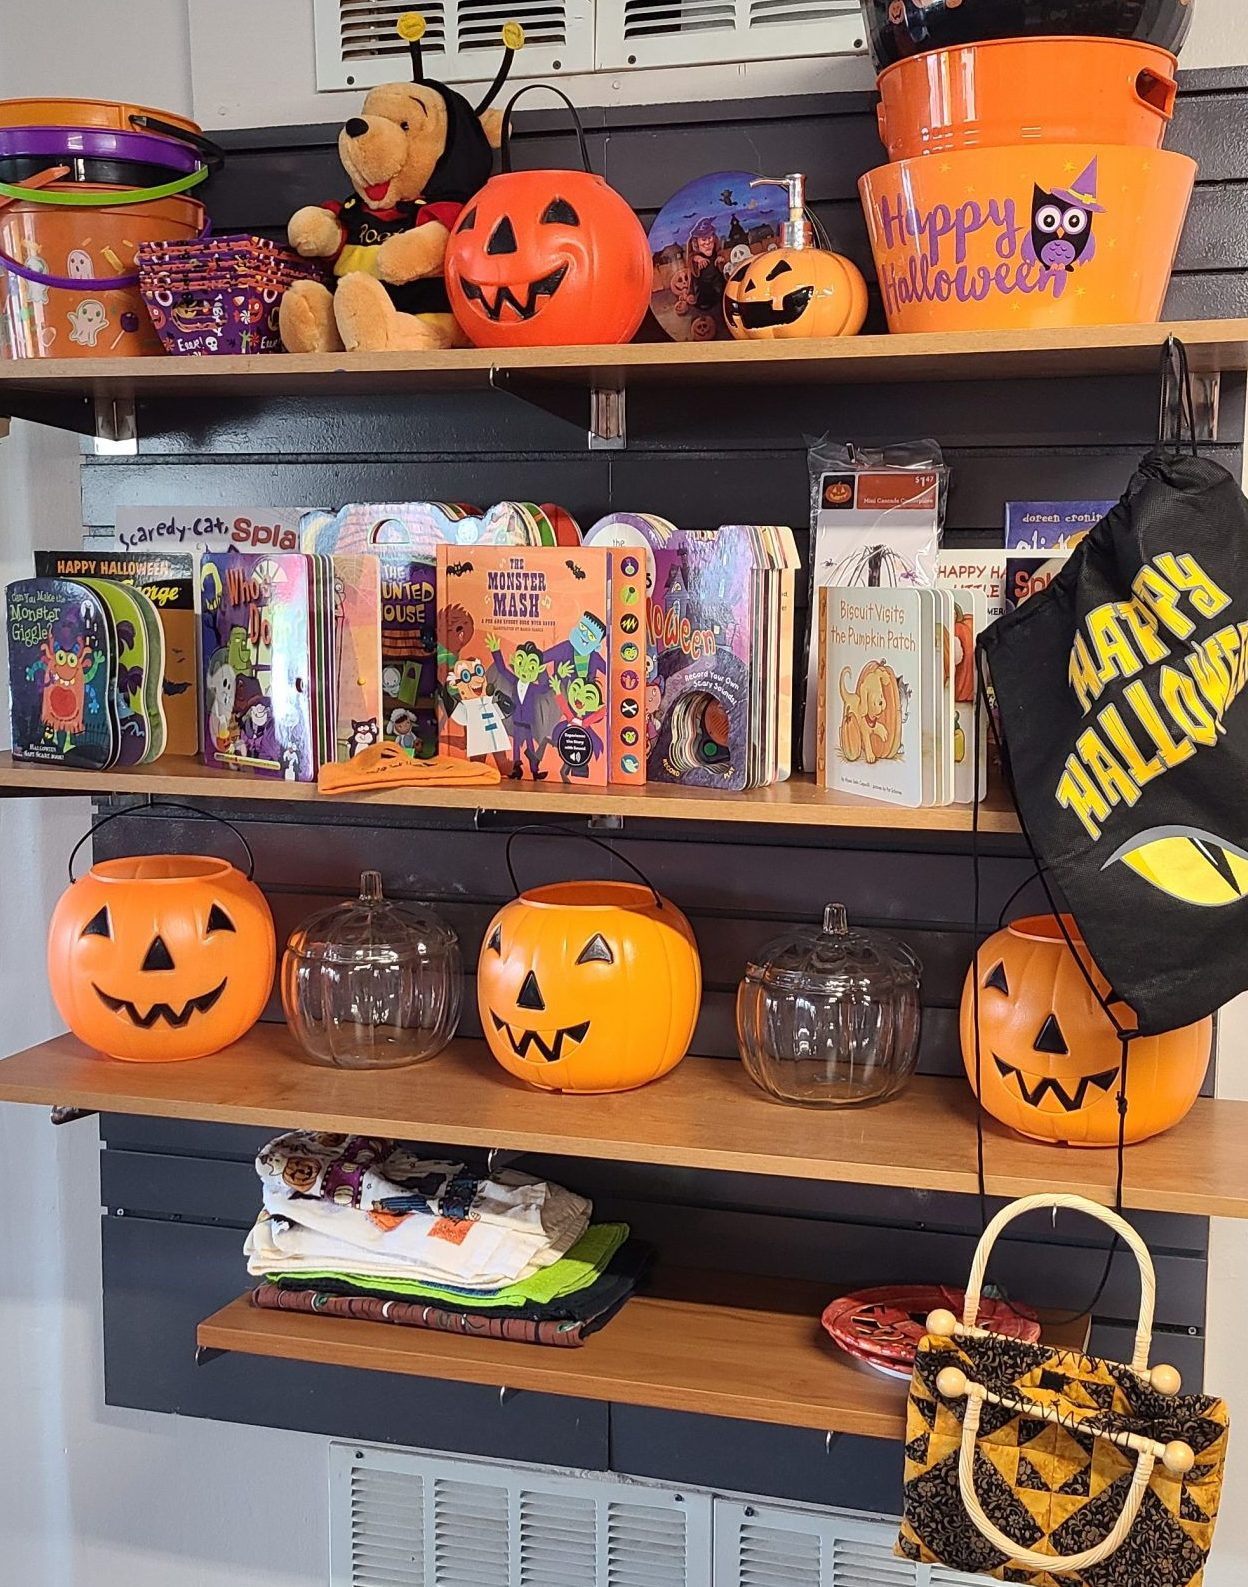 Fall Decorations and Halloween Items